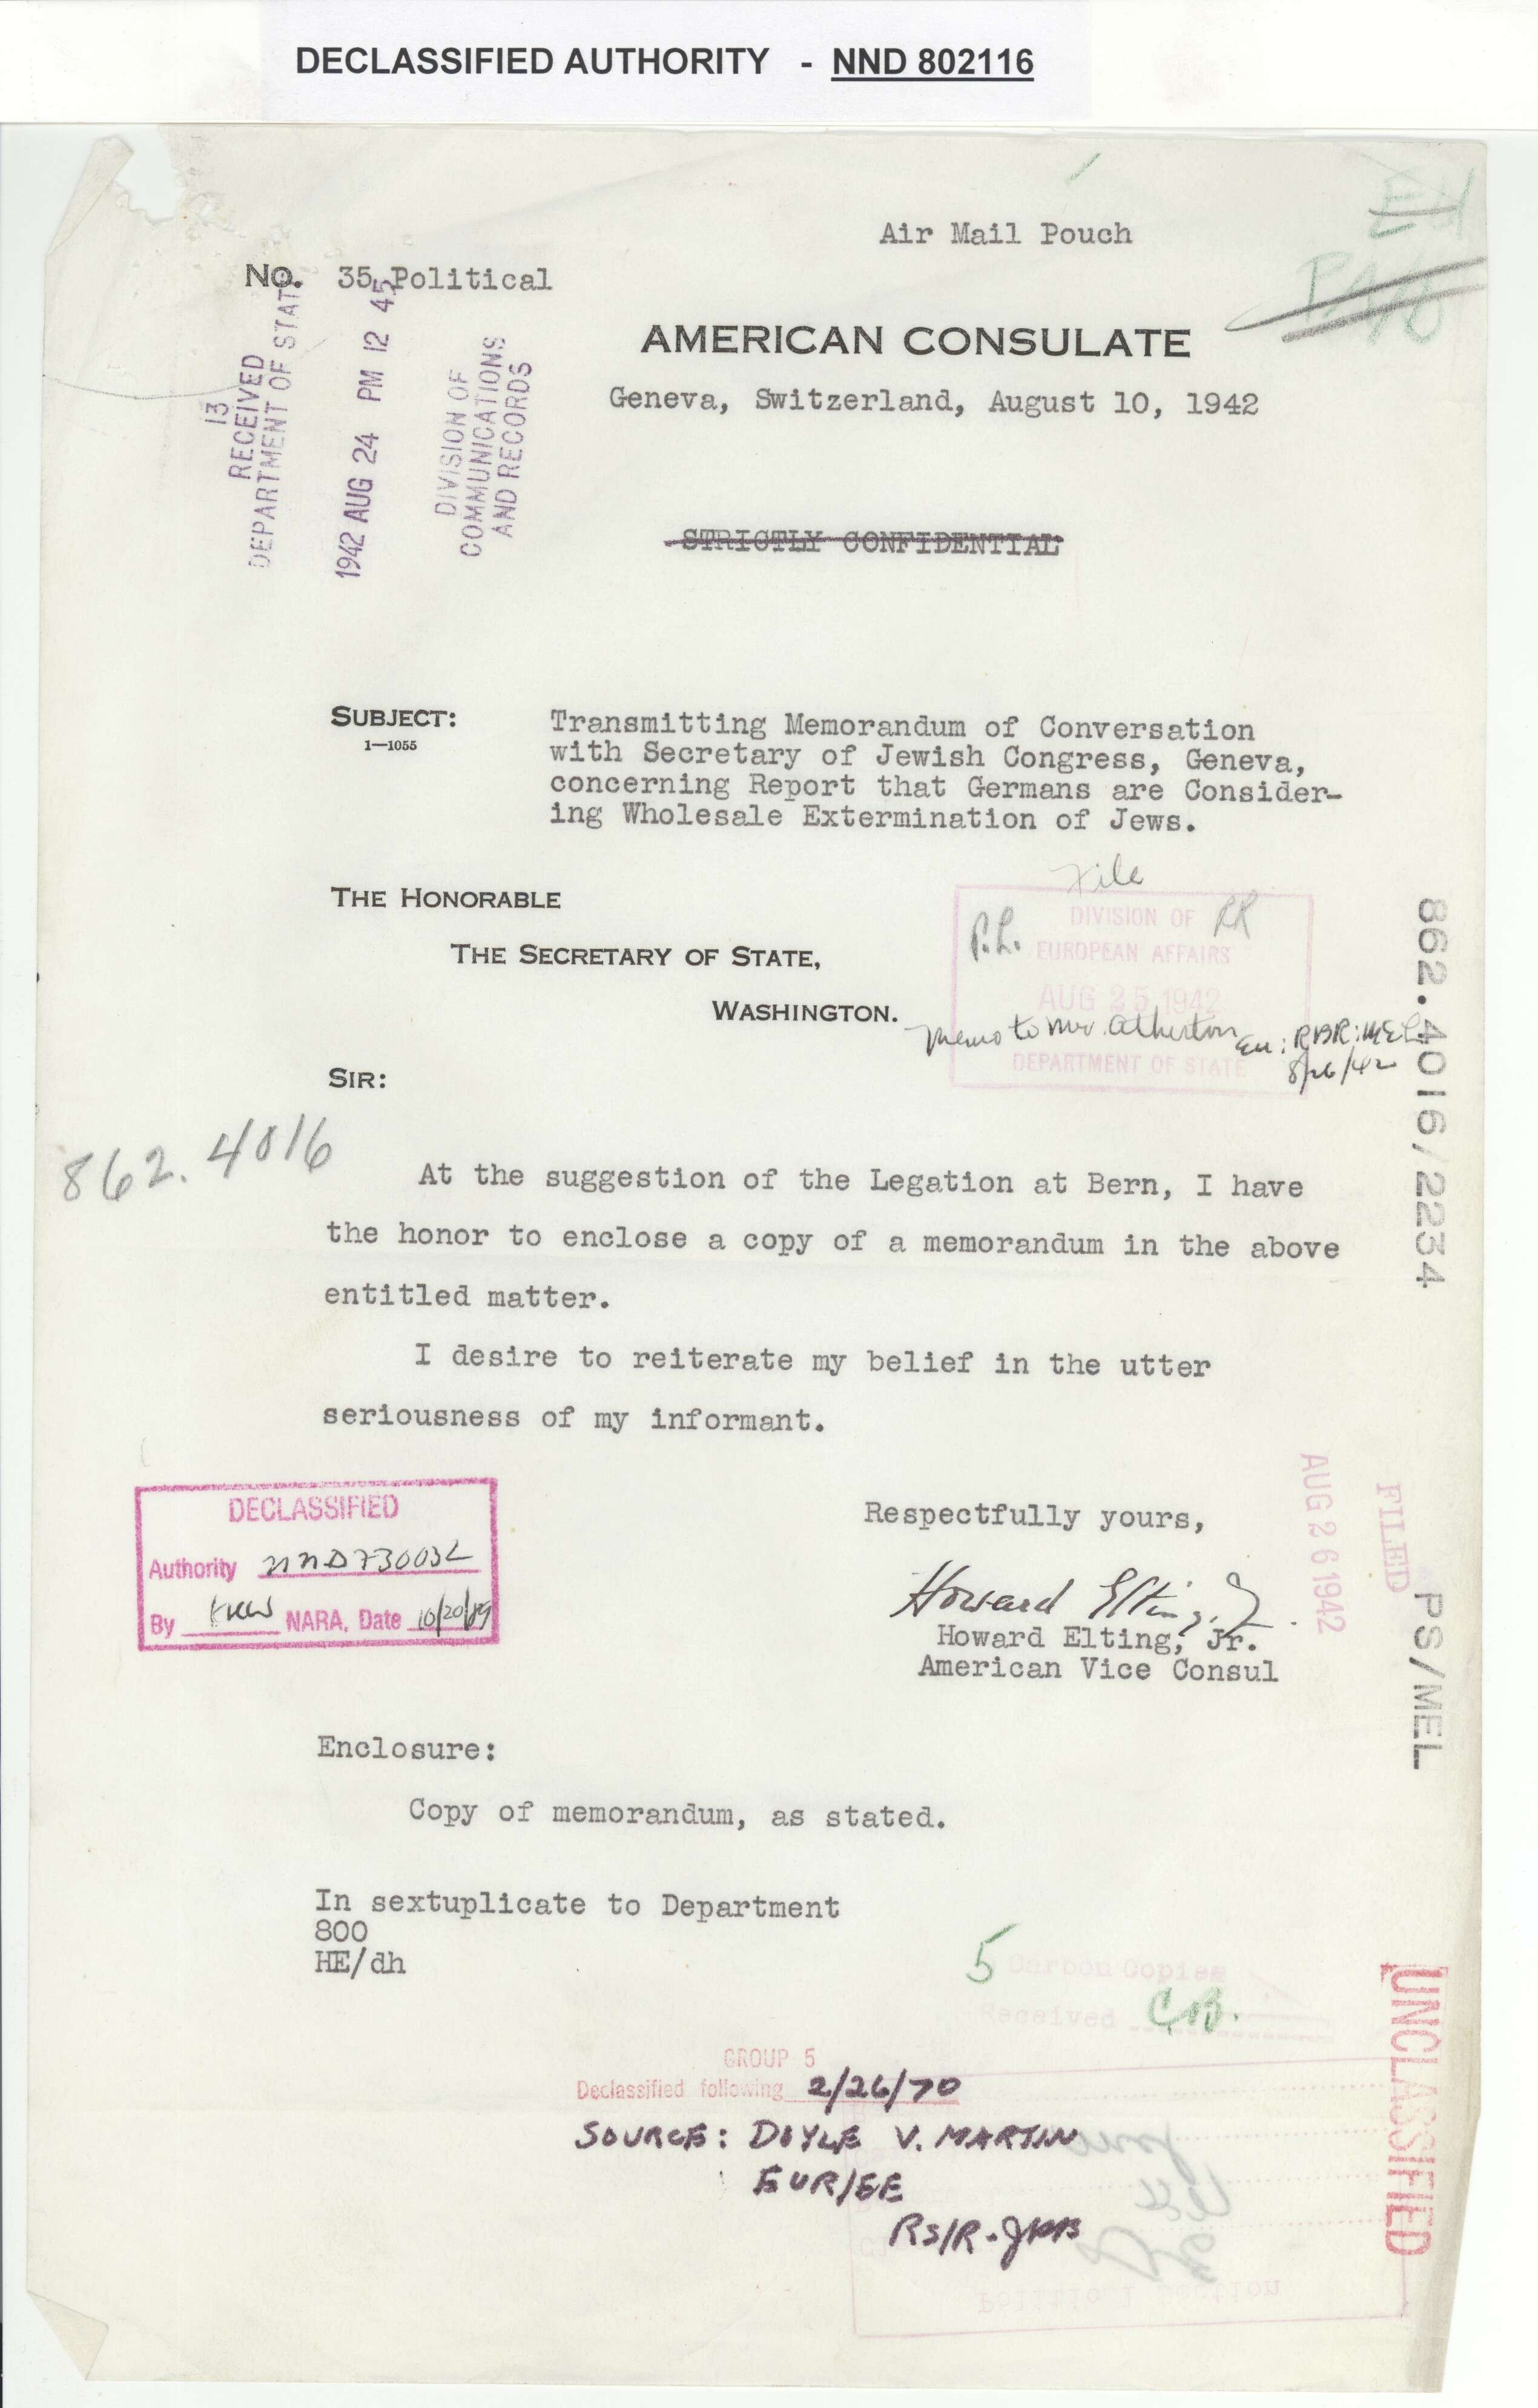 Correspondence from Howard Elting to Secretary of State related to the Holocaust